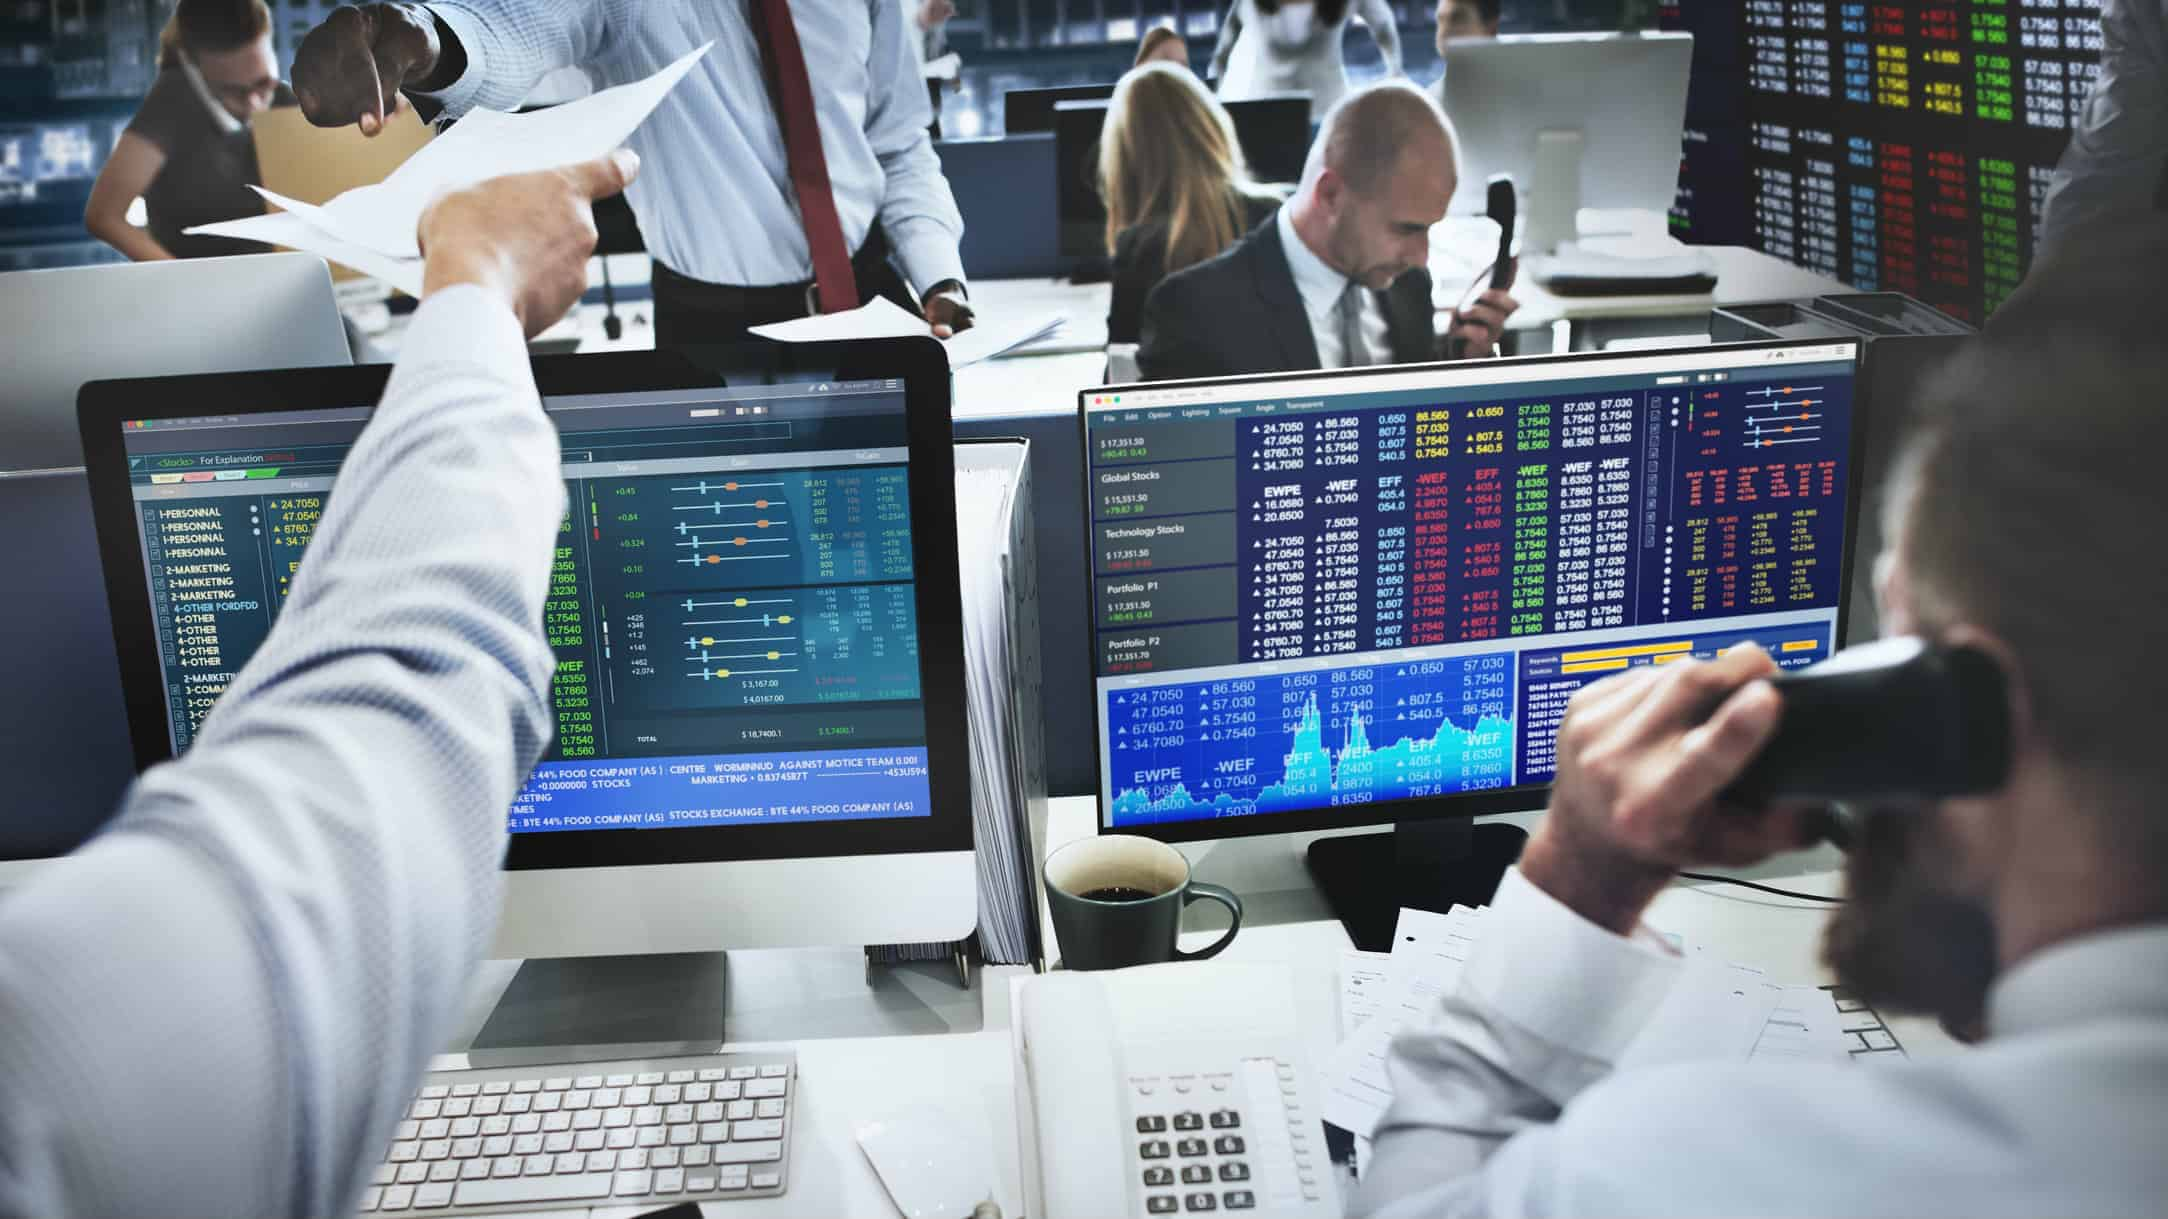 Brokers trading shares